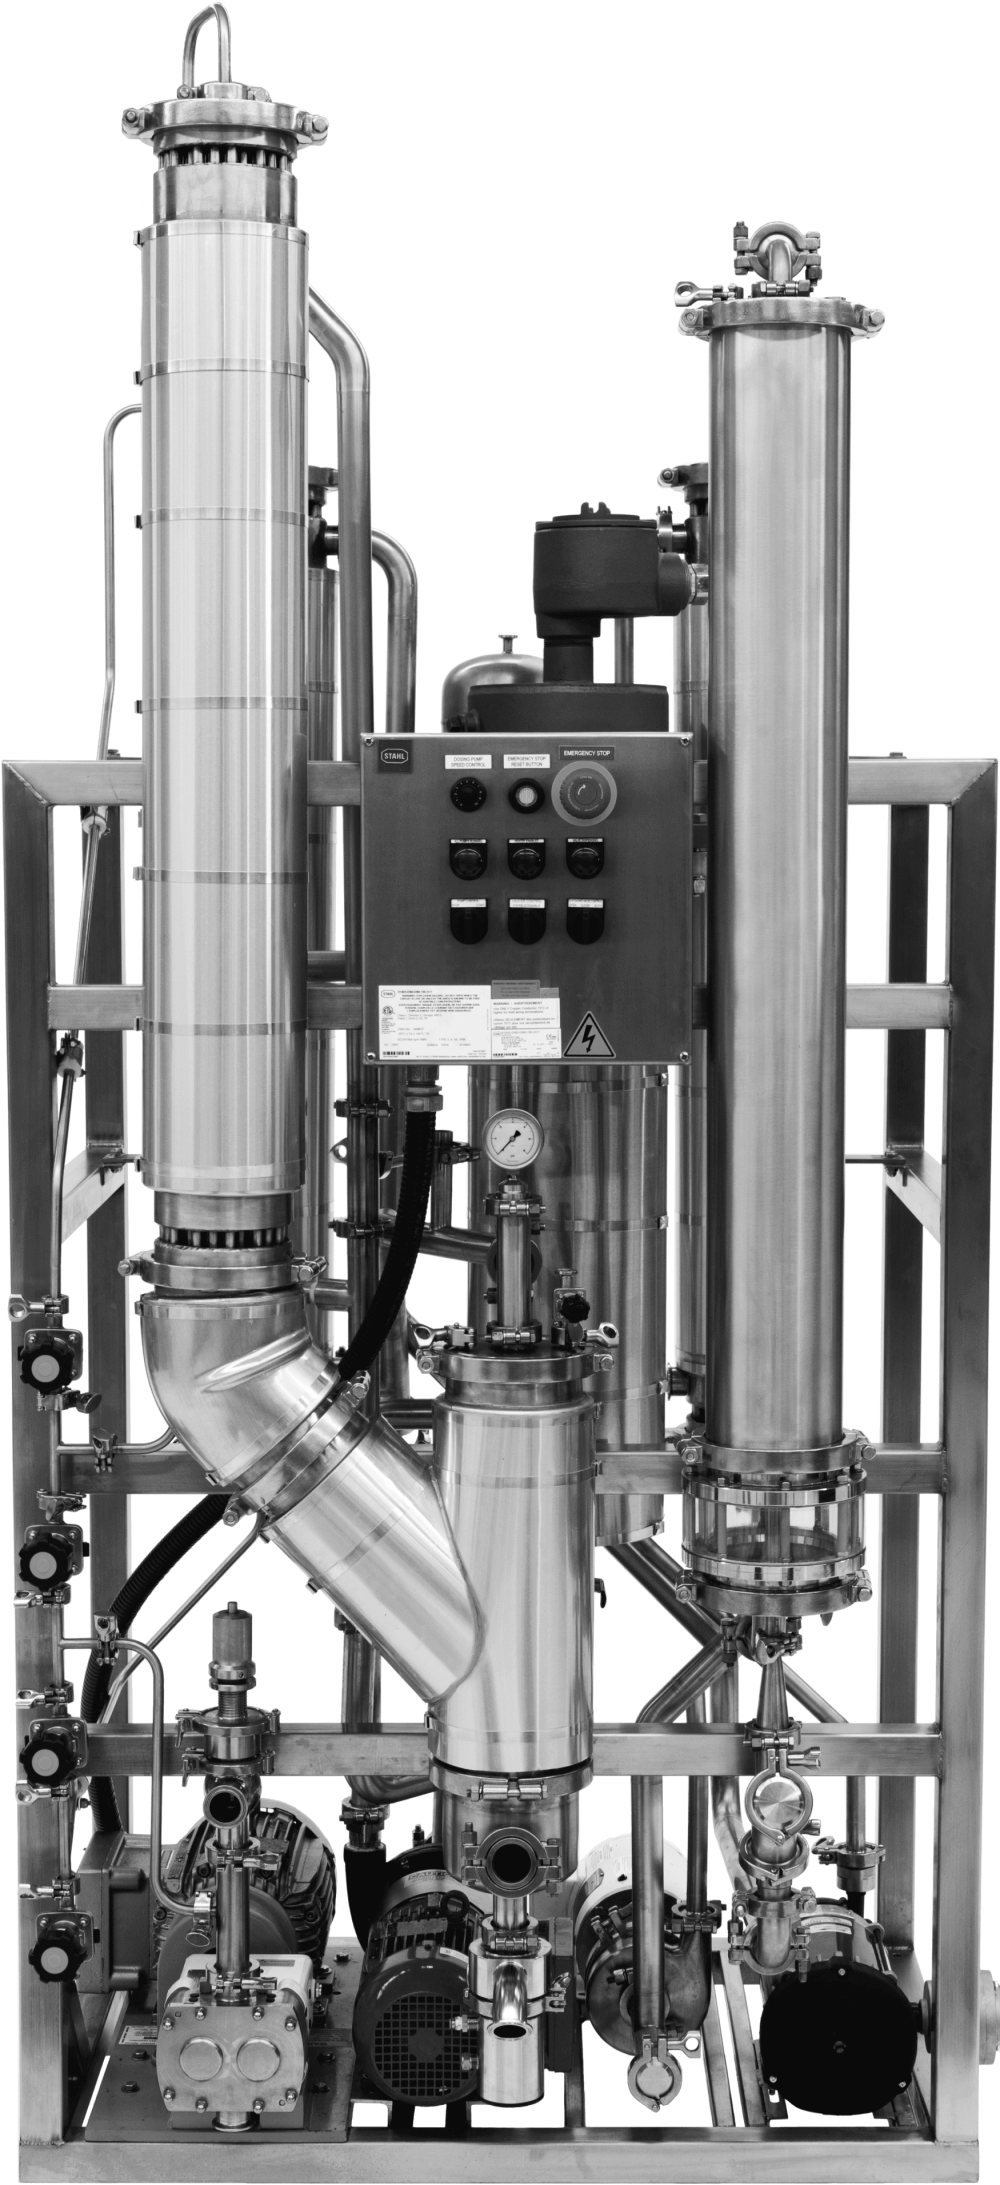 A front view of the EV S-Series Pro falling film evaporator